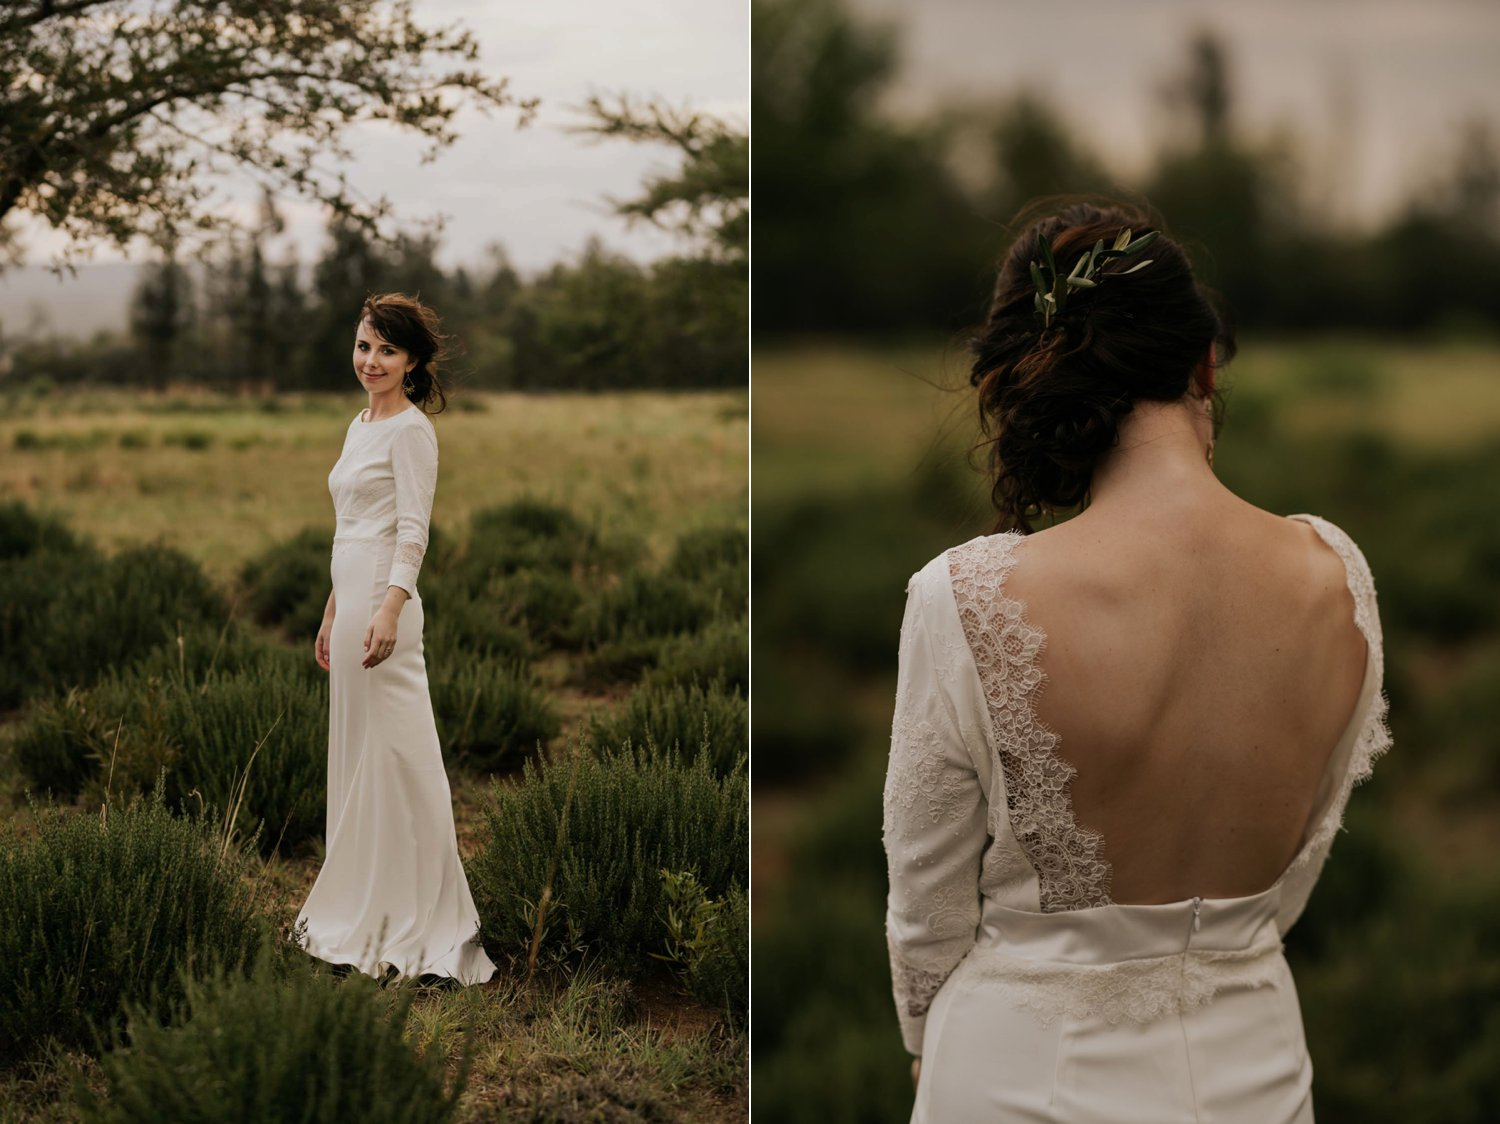 Modern bride wearing a simple lace backless wedding dress with three quarter sleeves stands in wild farm field